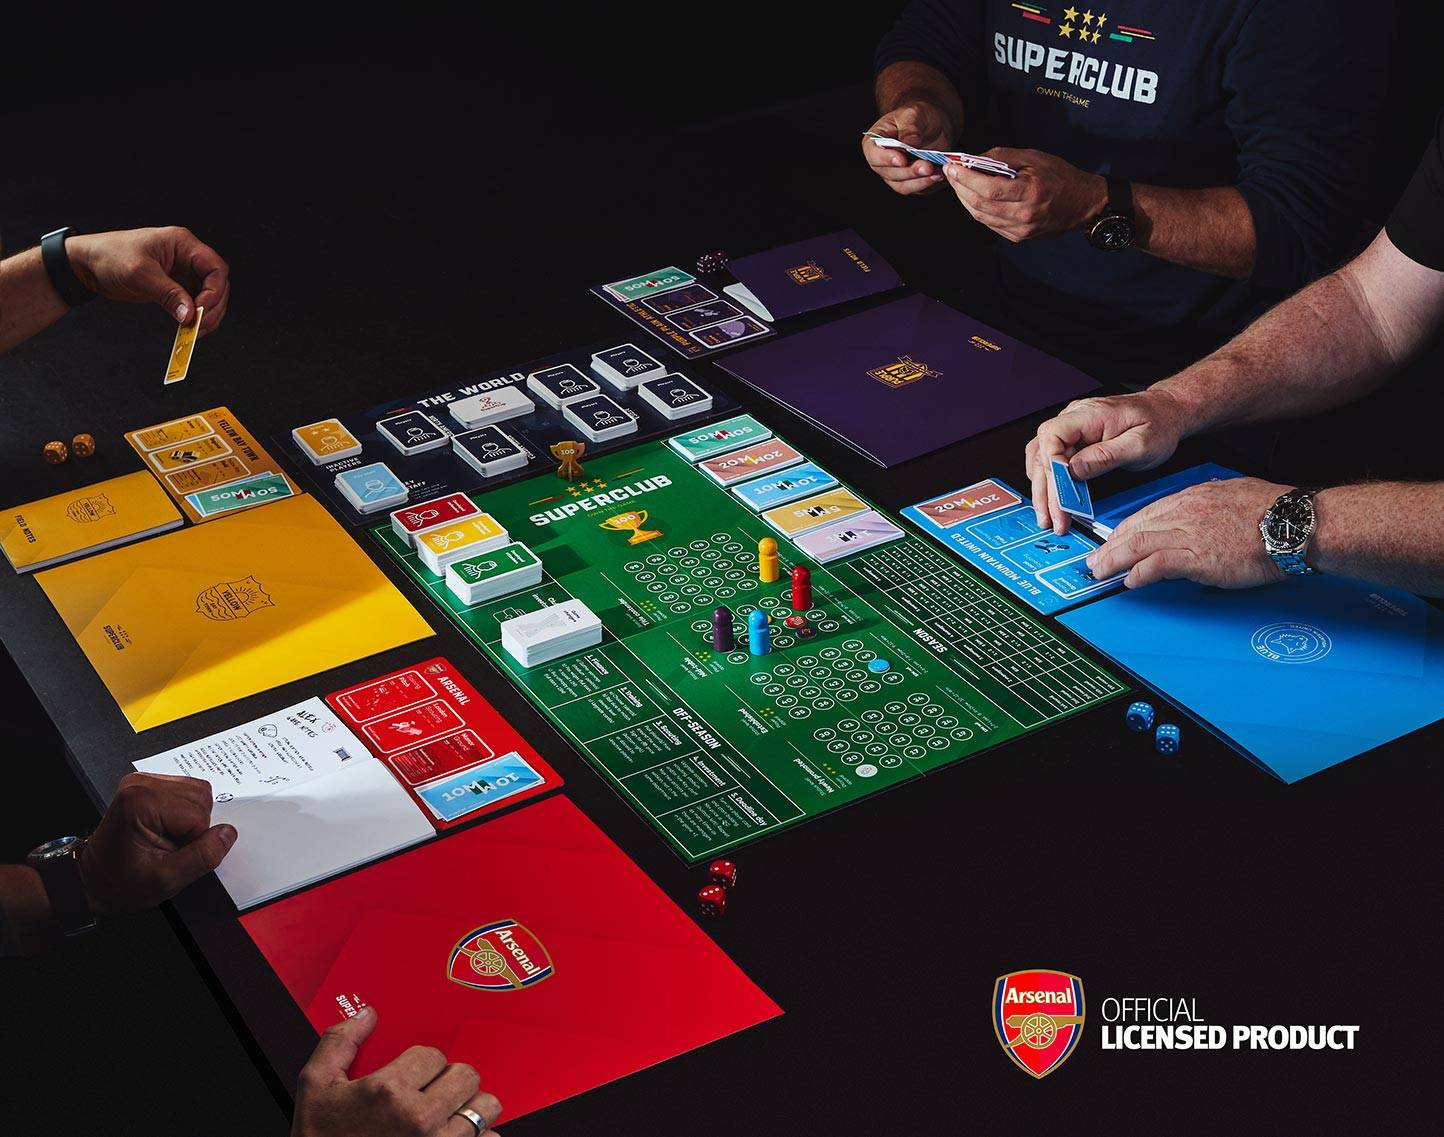 Superclub Arsenal expansion reservation